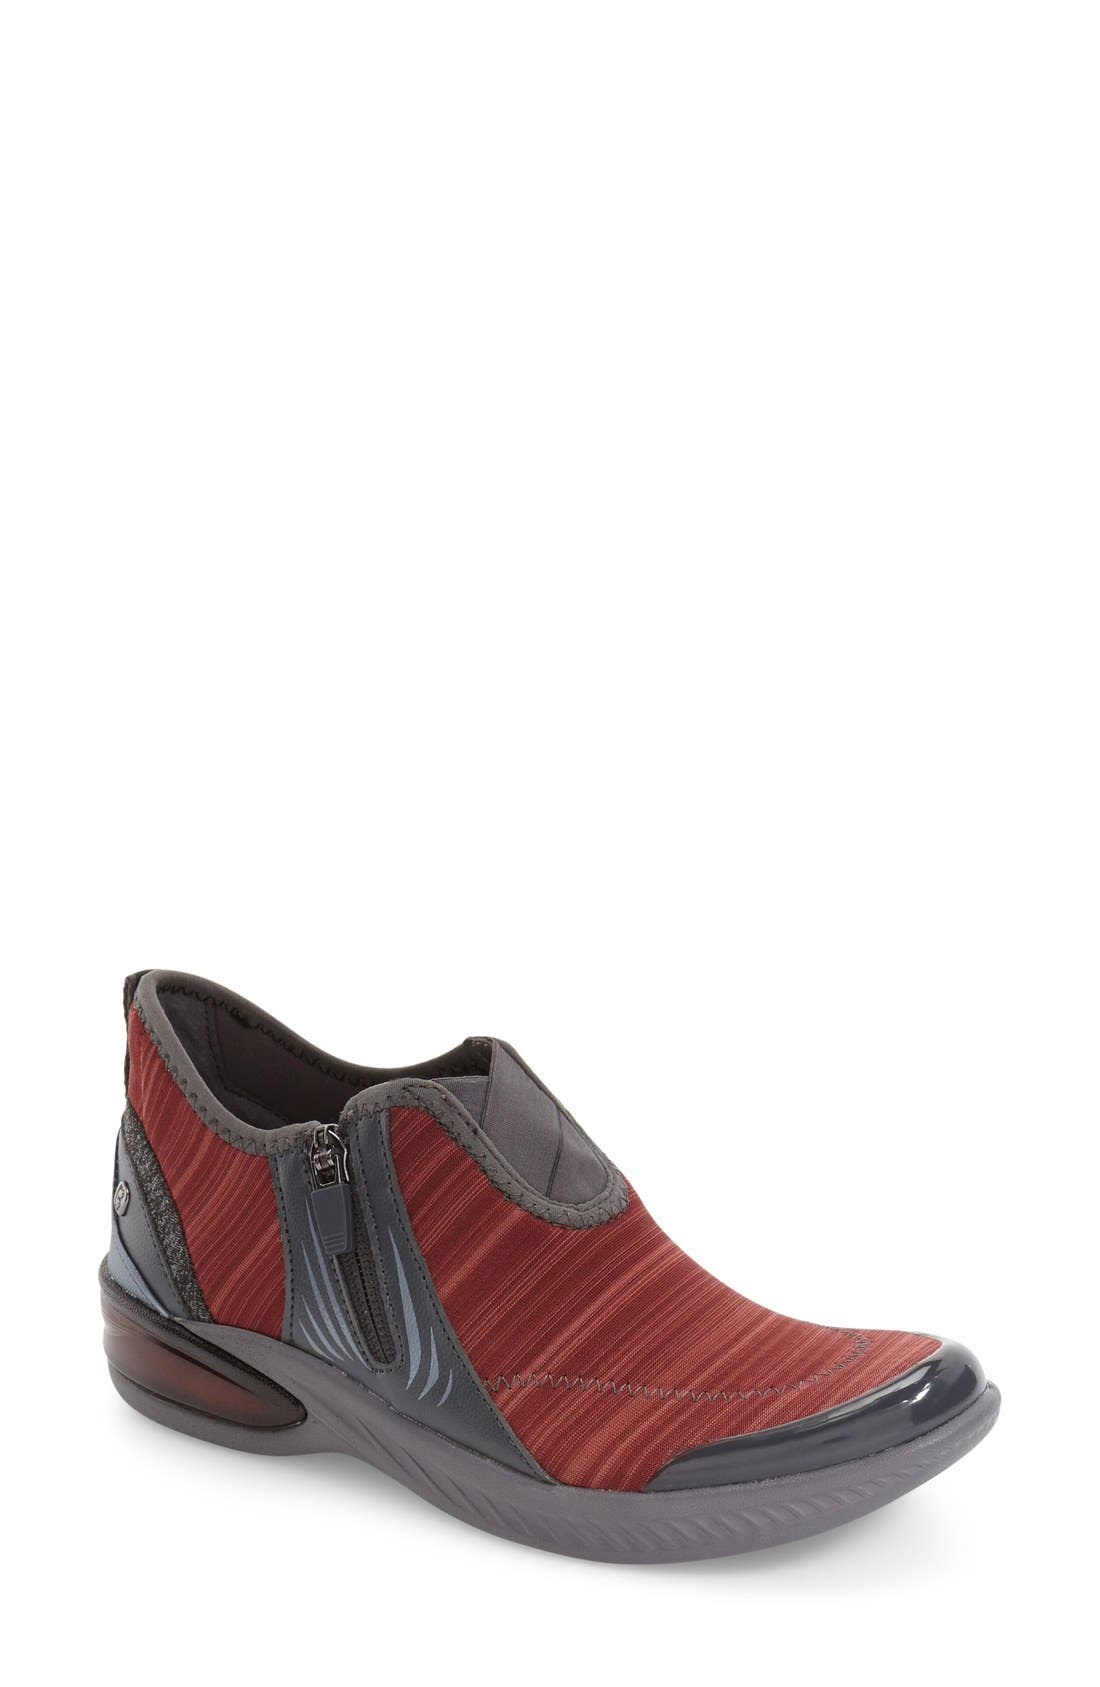 Nova Midi Sneaker,                             Main thumbnail 1, color,                             DARK RED LINEAR HEATHER FABRIC